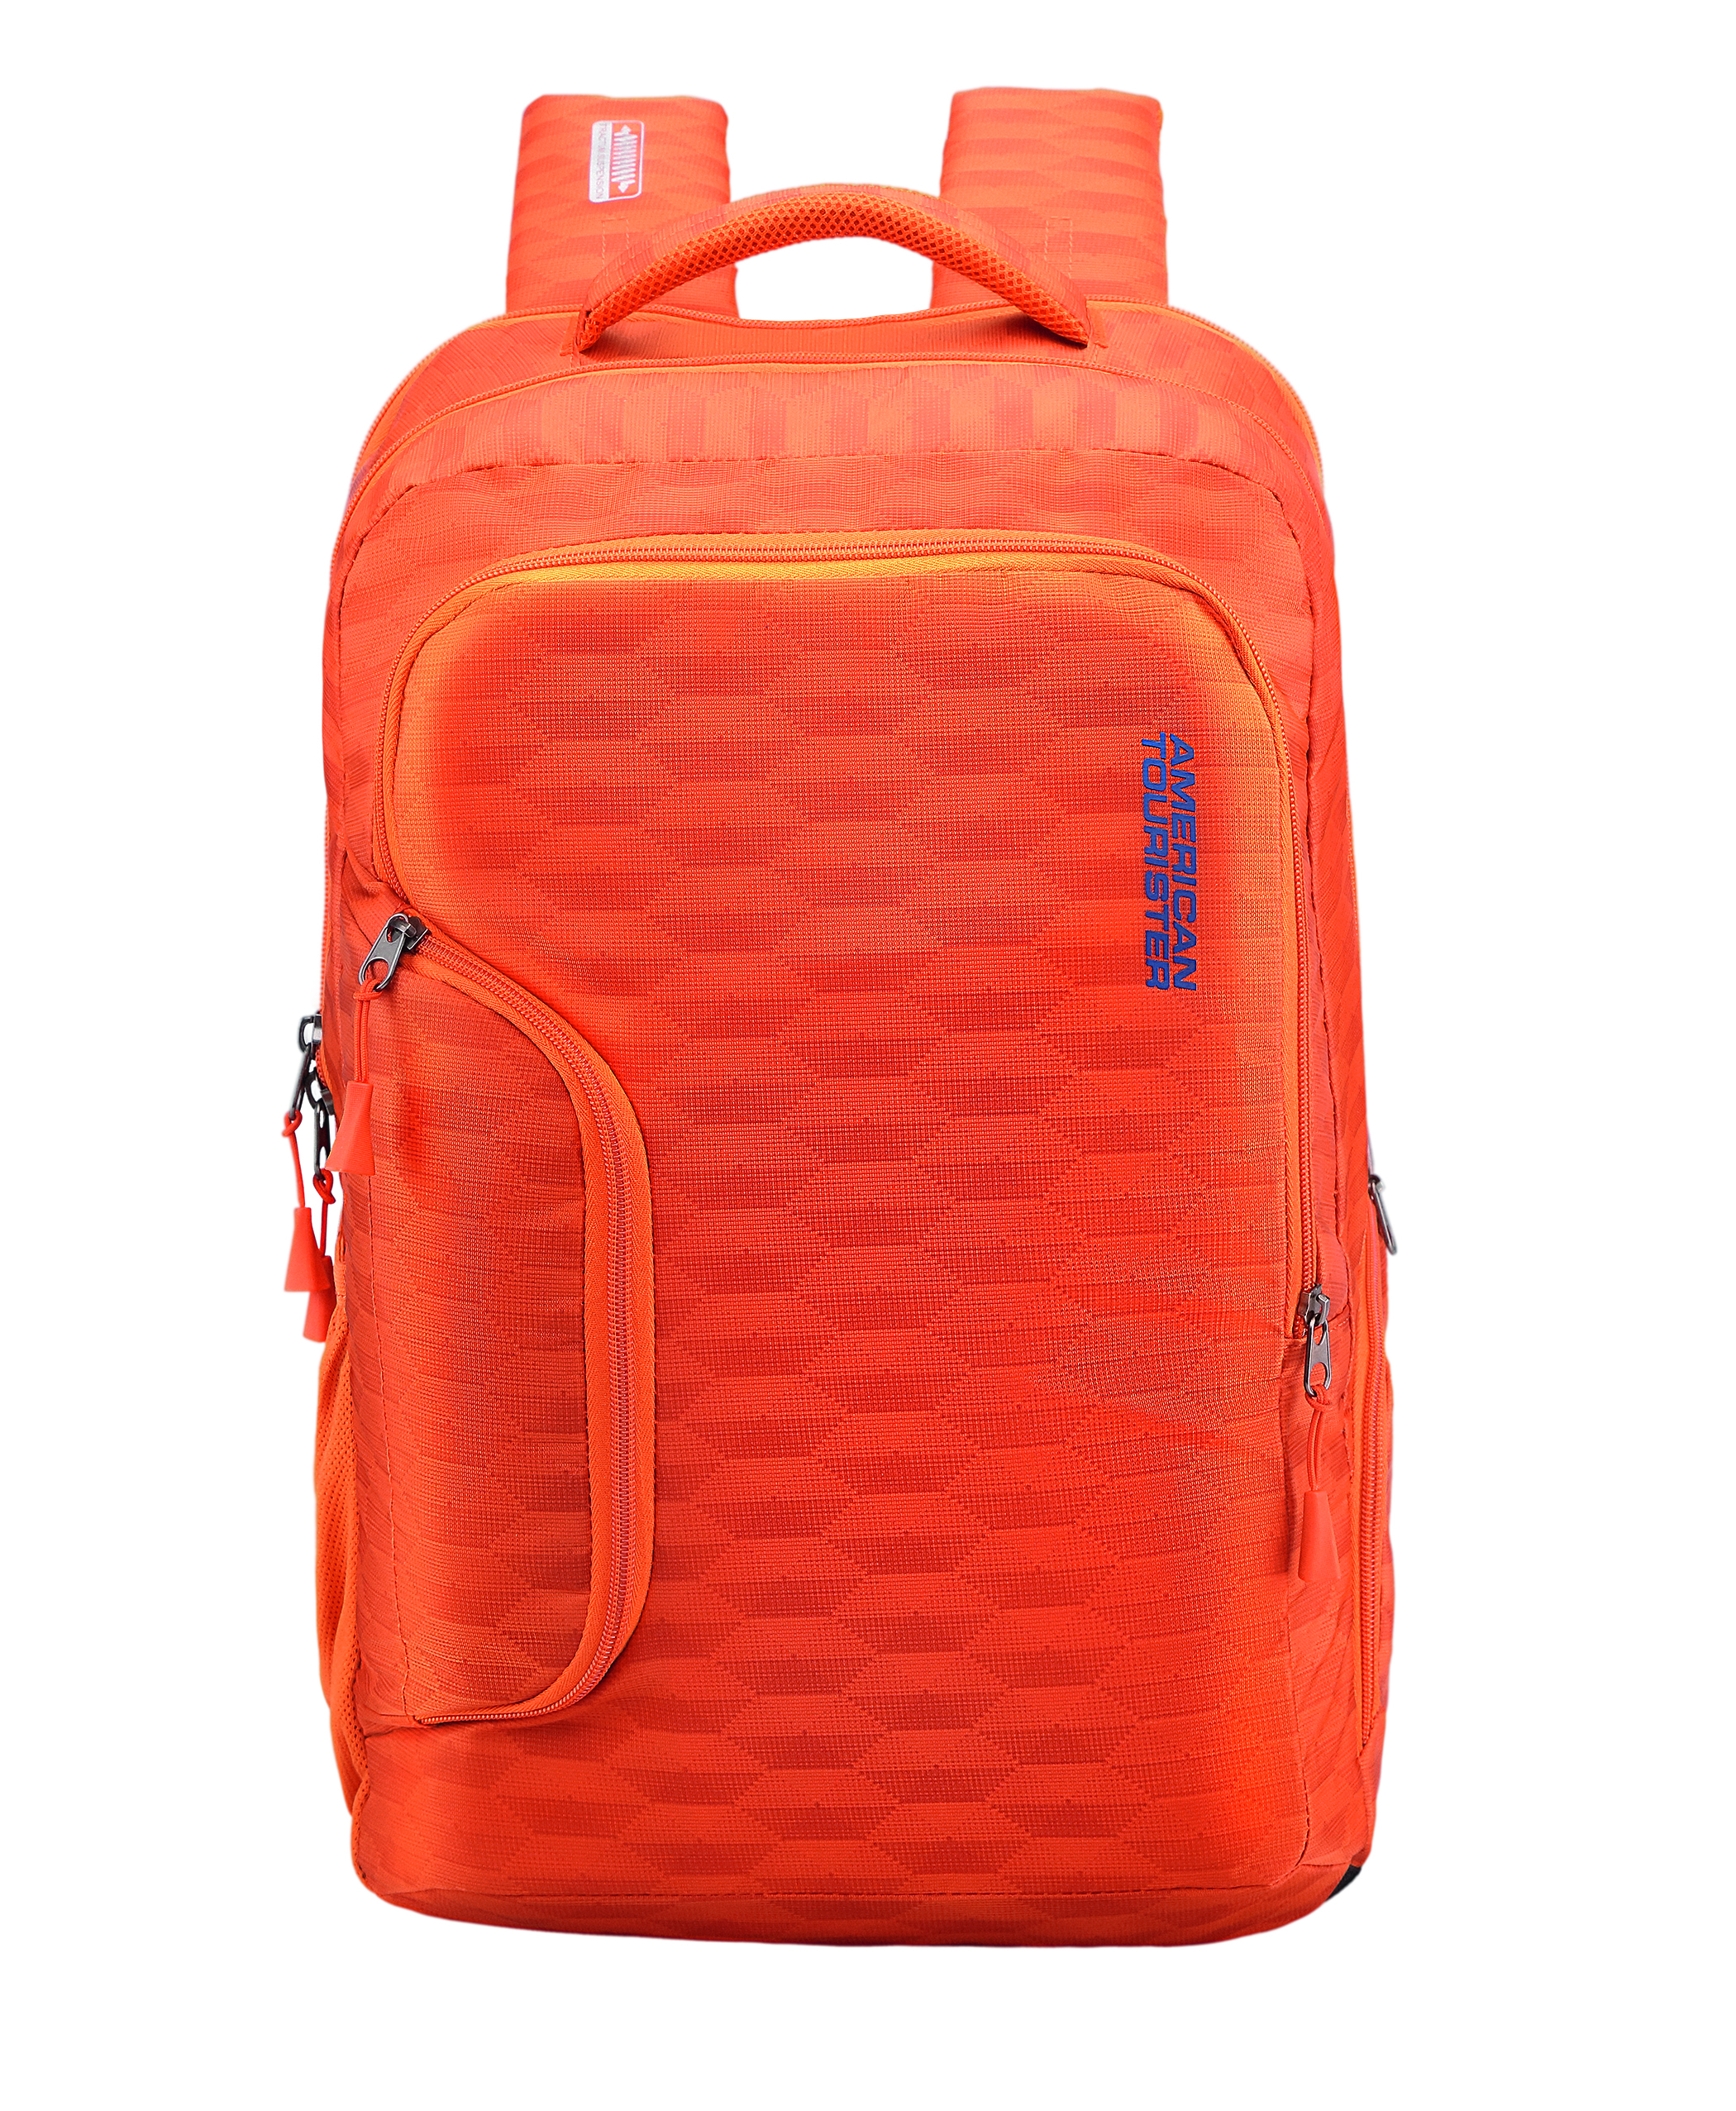 Backpacks American Tourister India